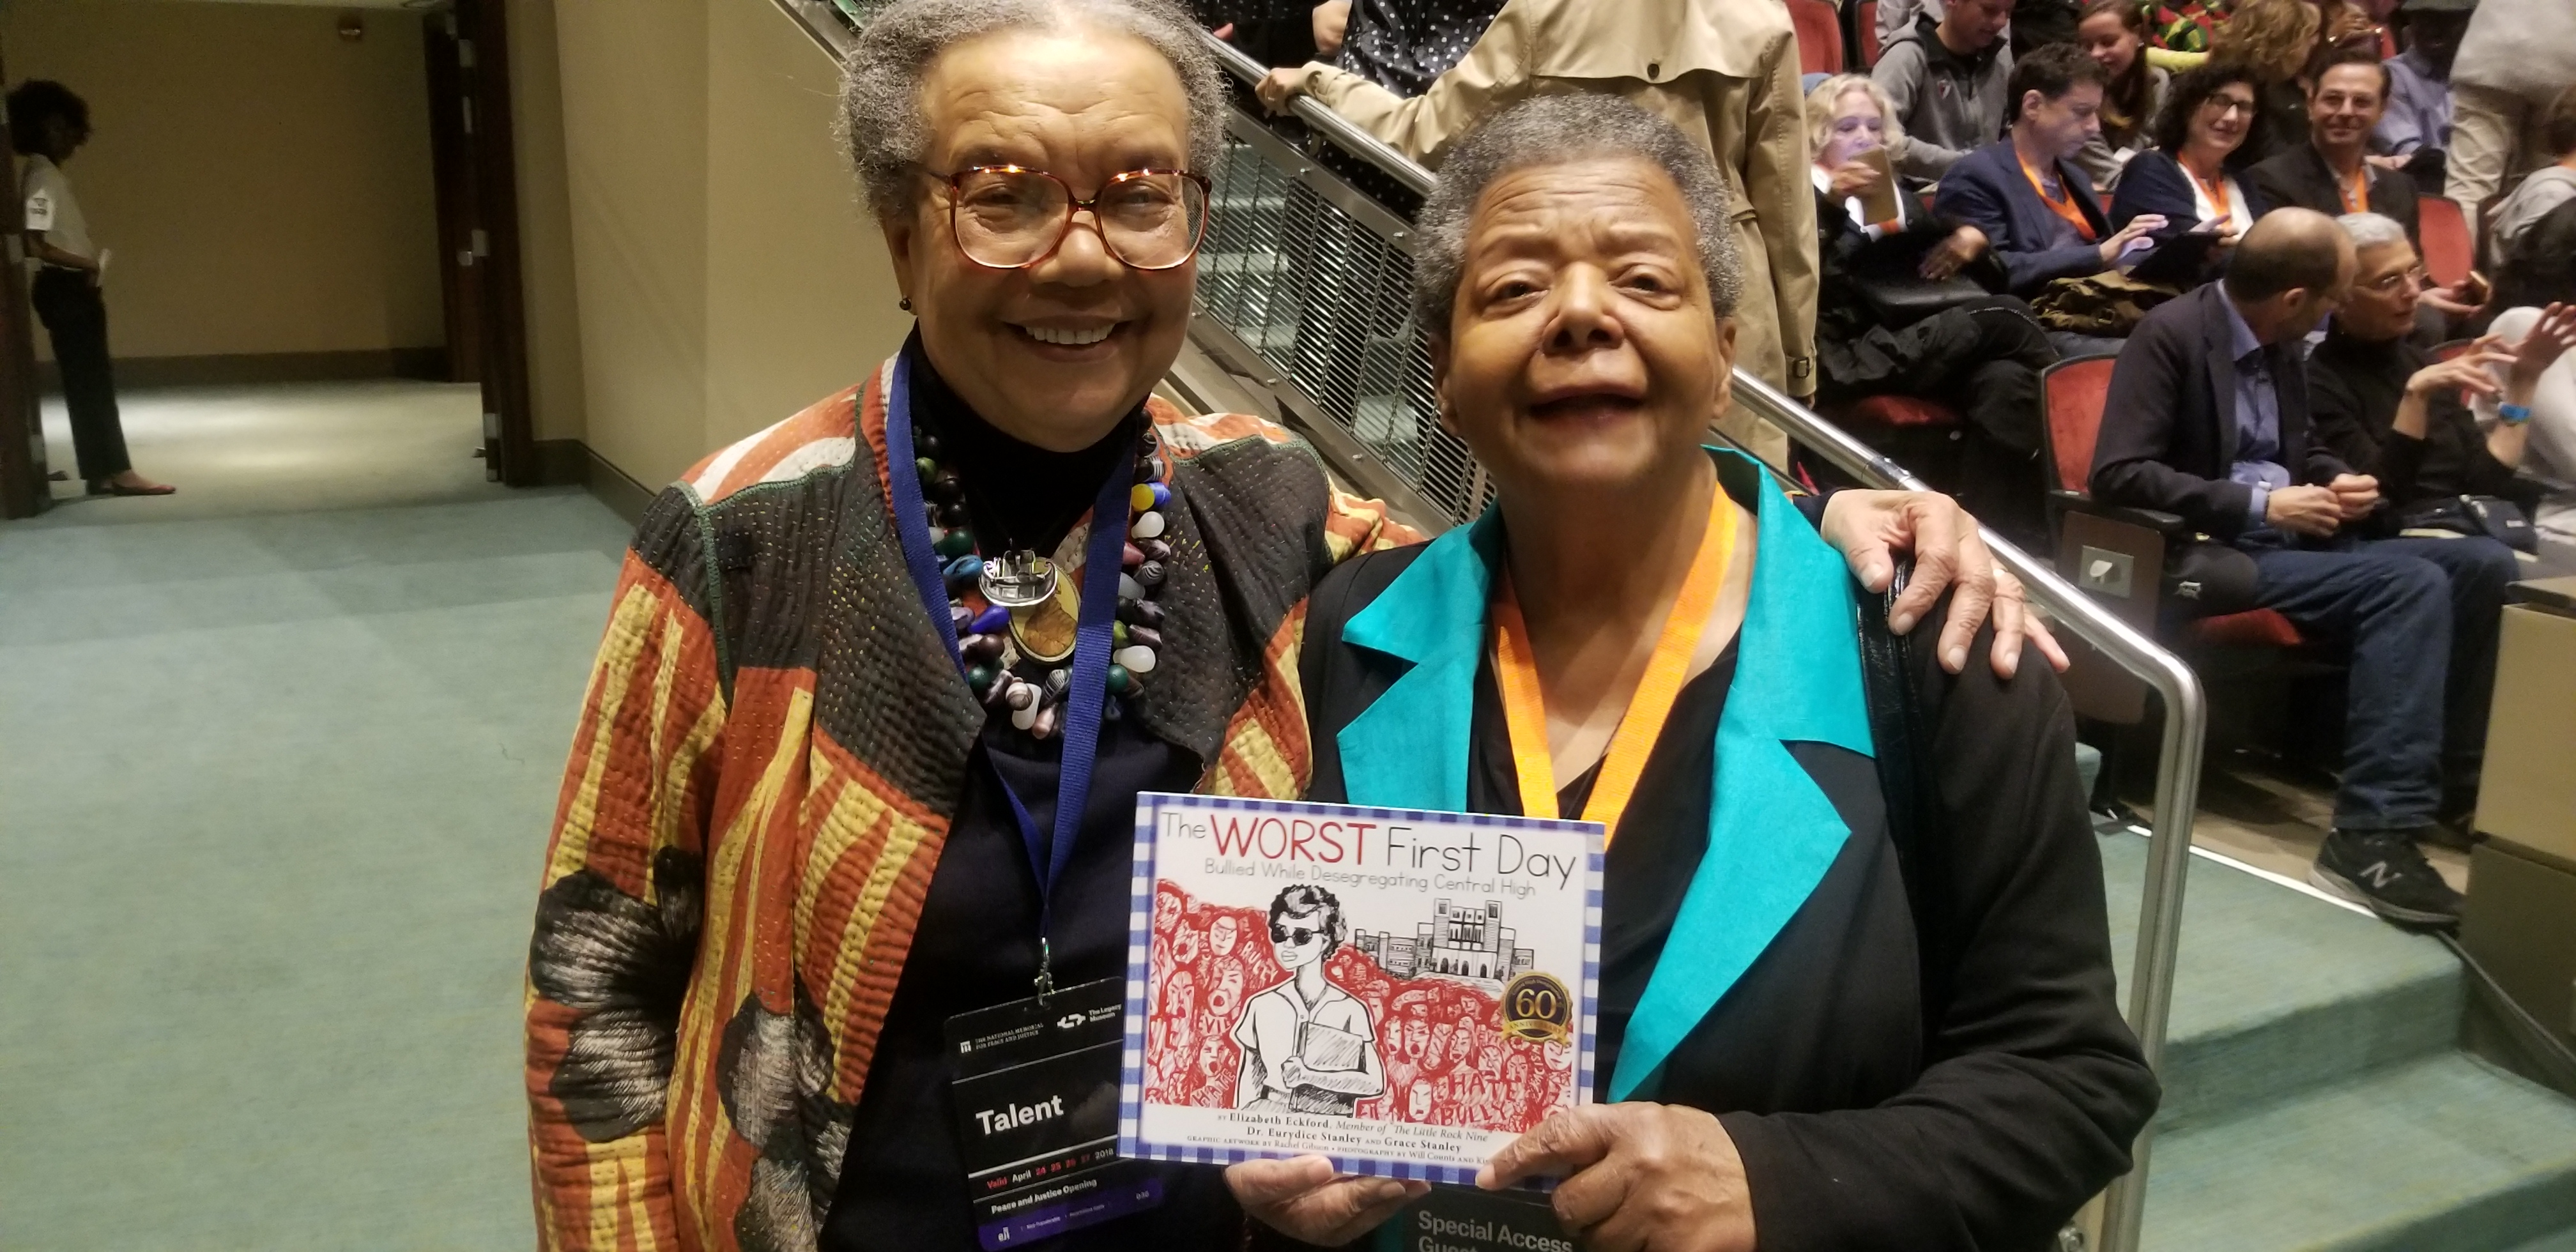 Elizabeth Eckford posing with another member of the Little Rock Nine